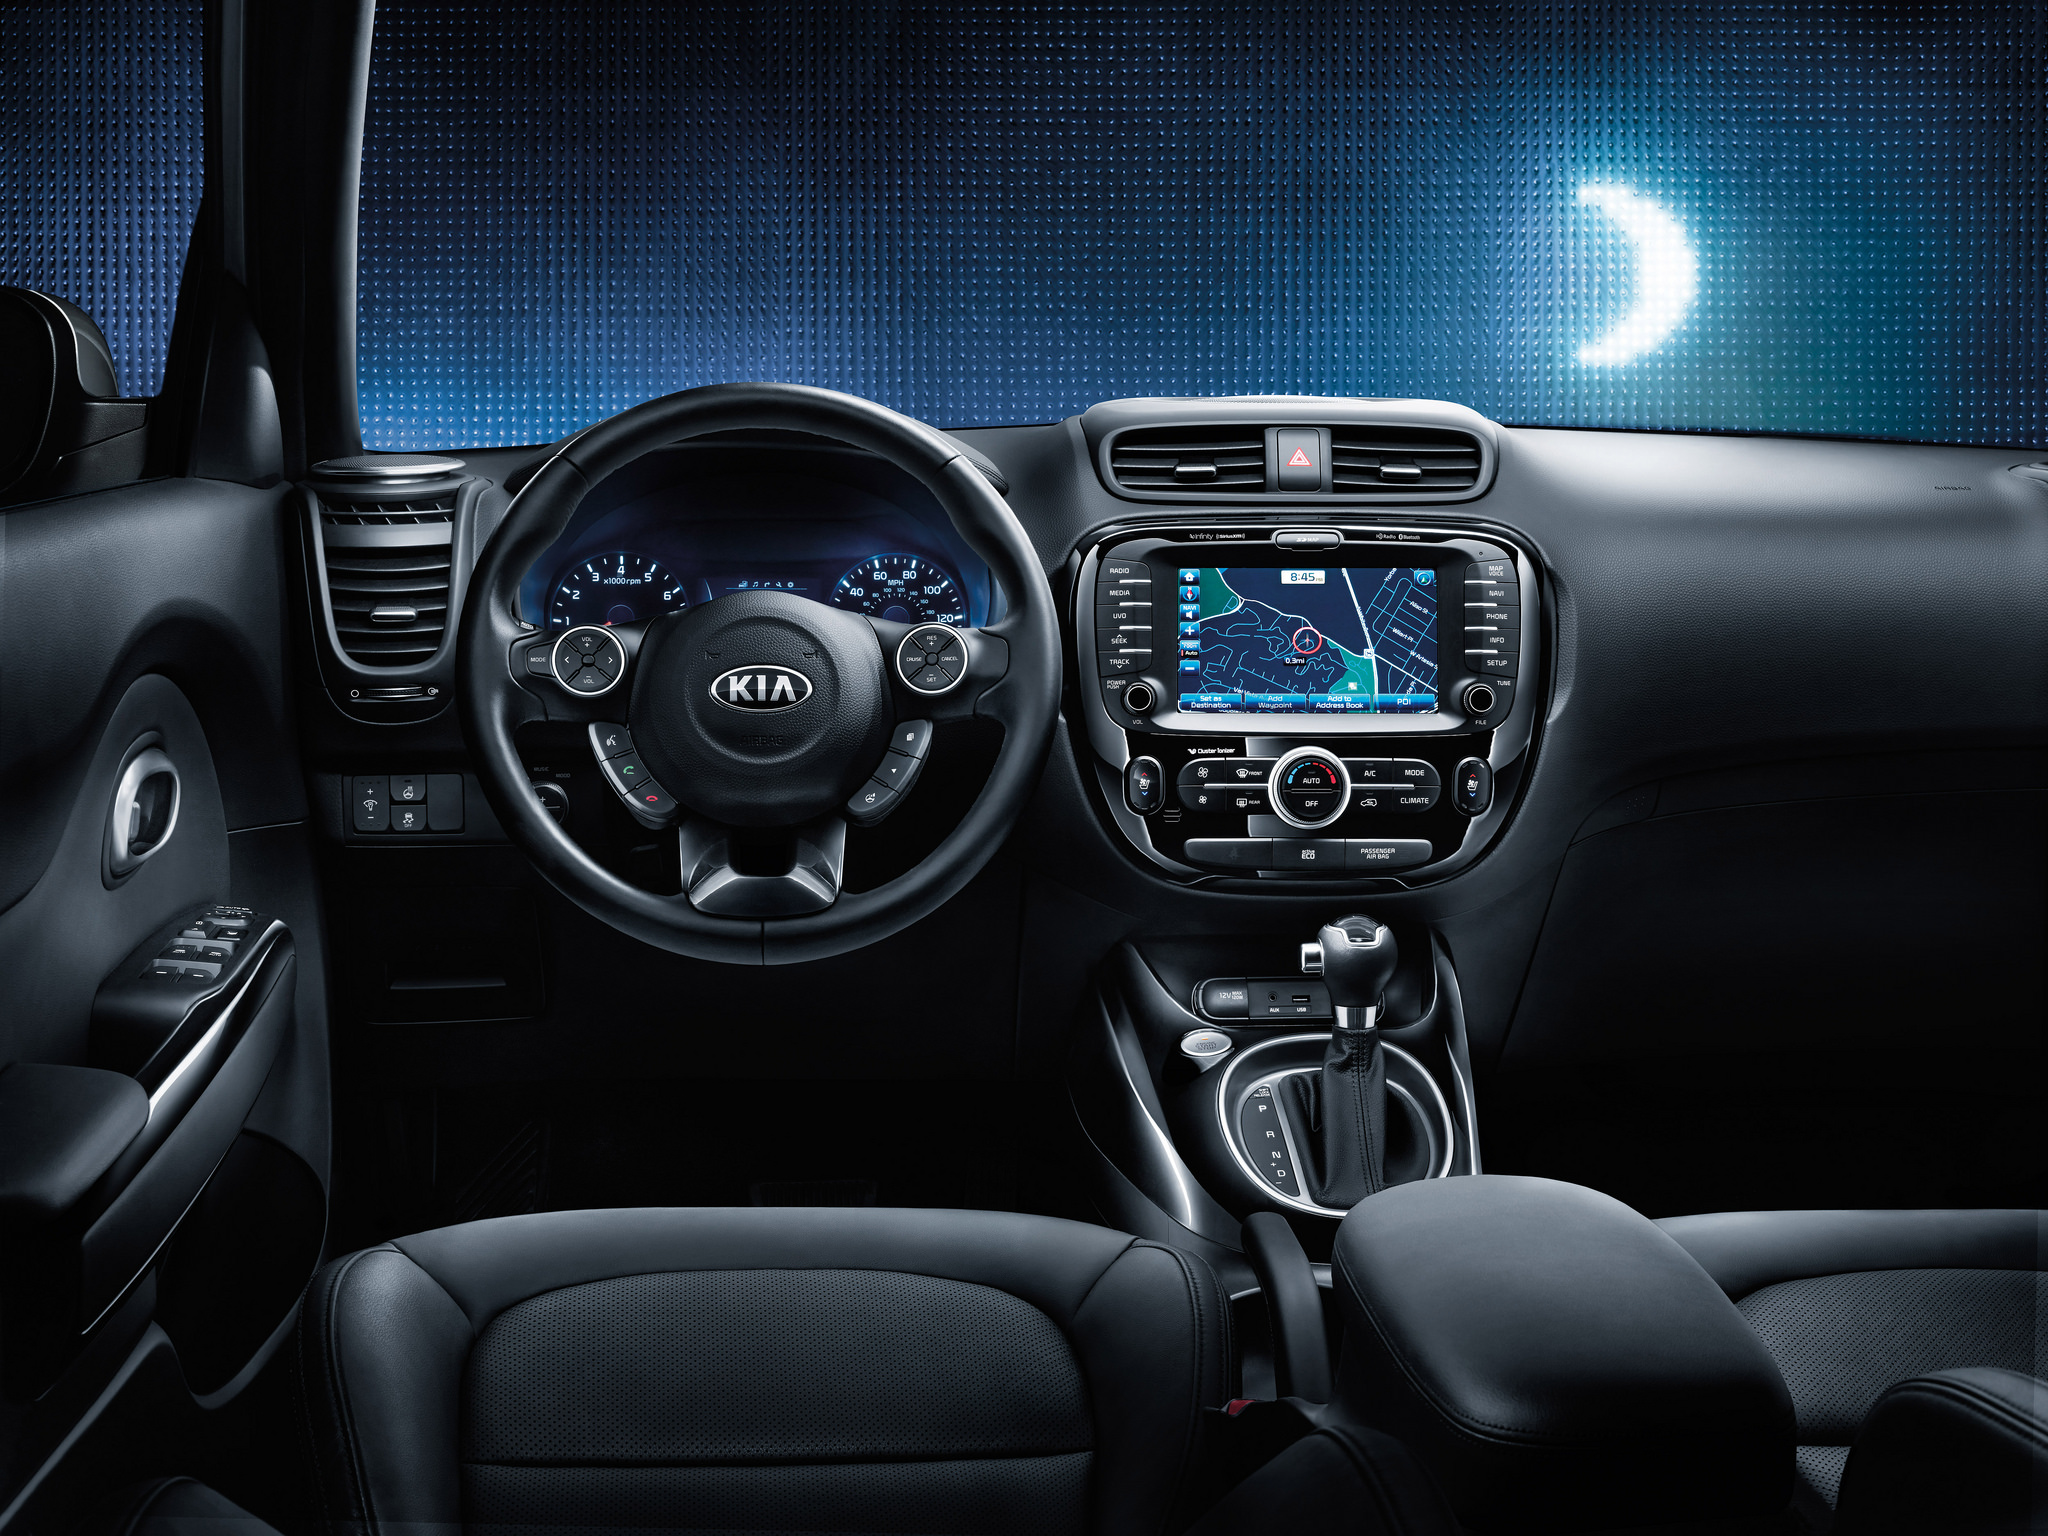 2016 kia soul model overview carriage kia. Black Bedroom Furniture Sets. Home Design Ideas